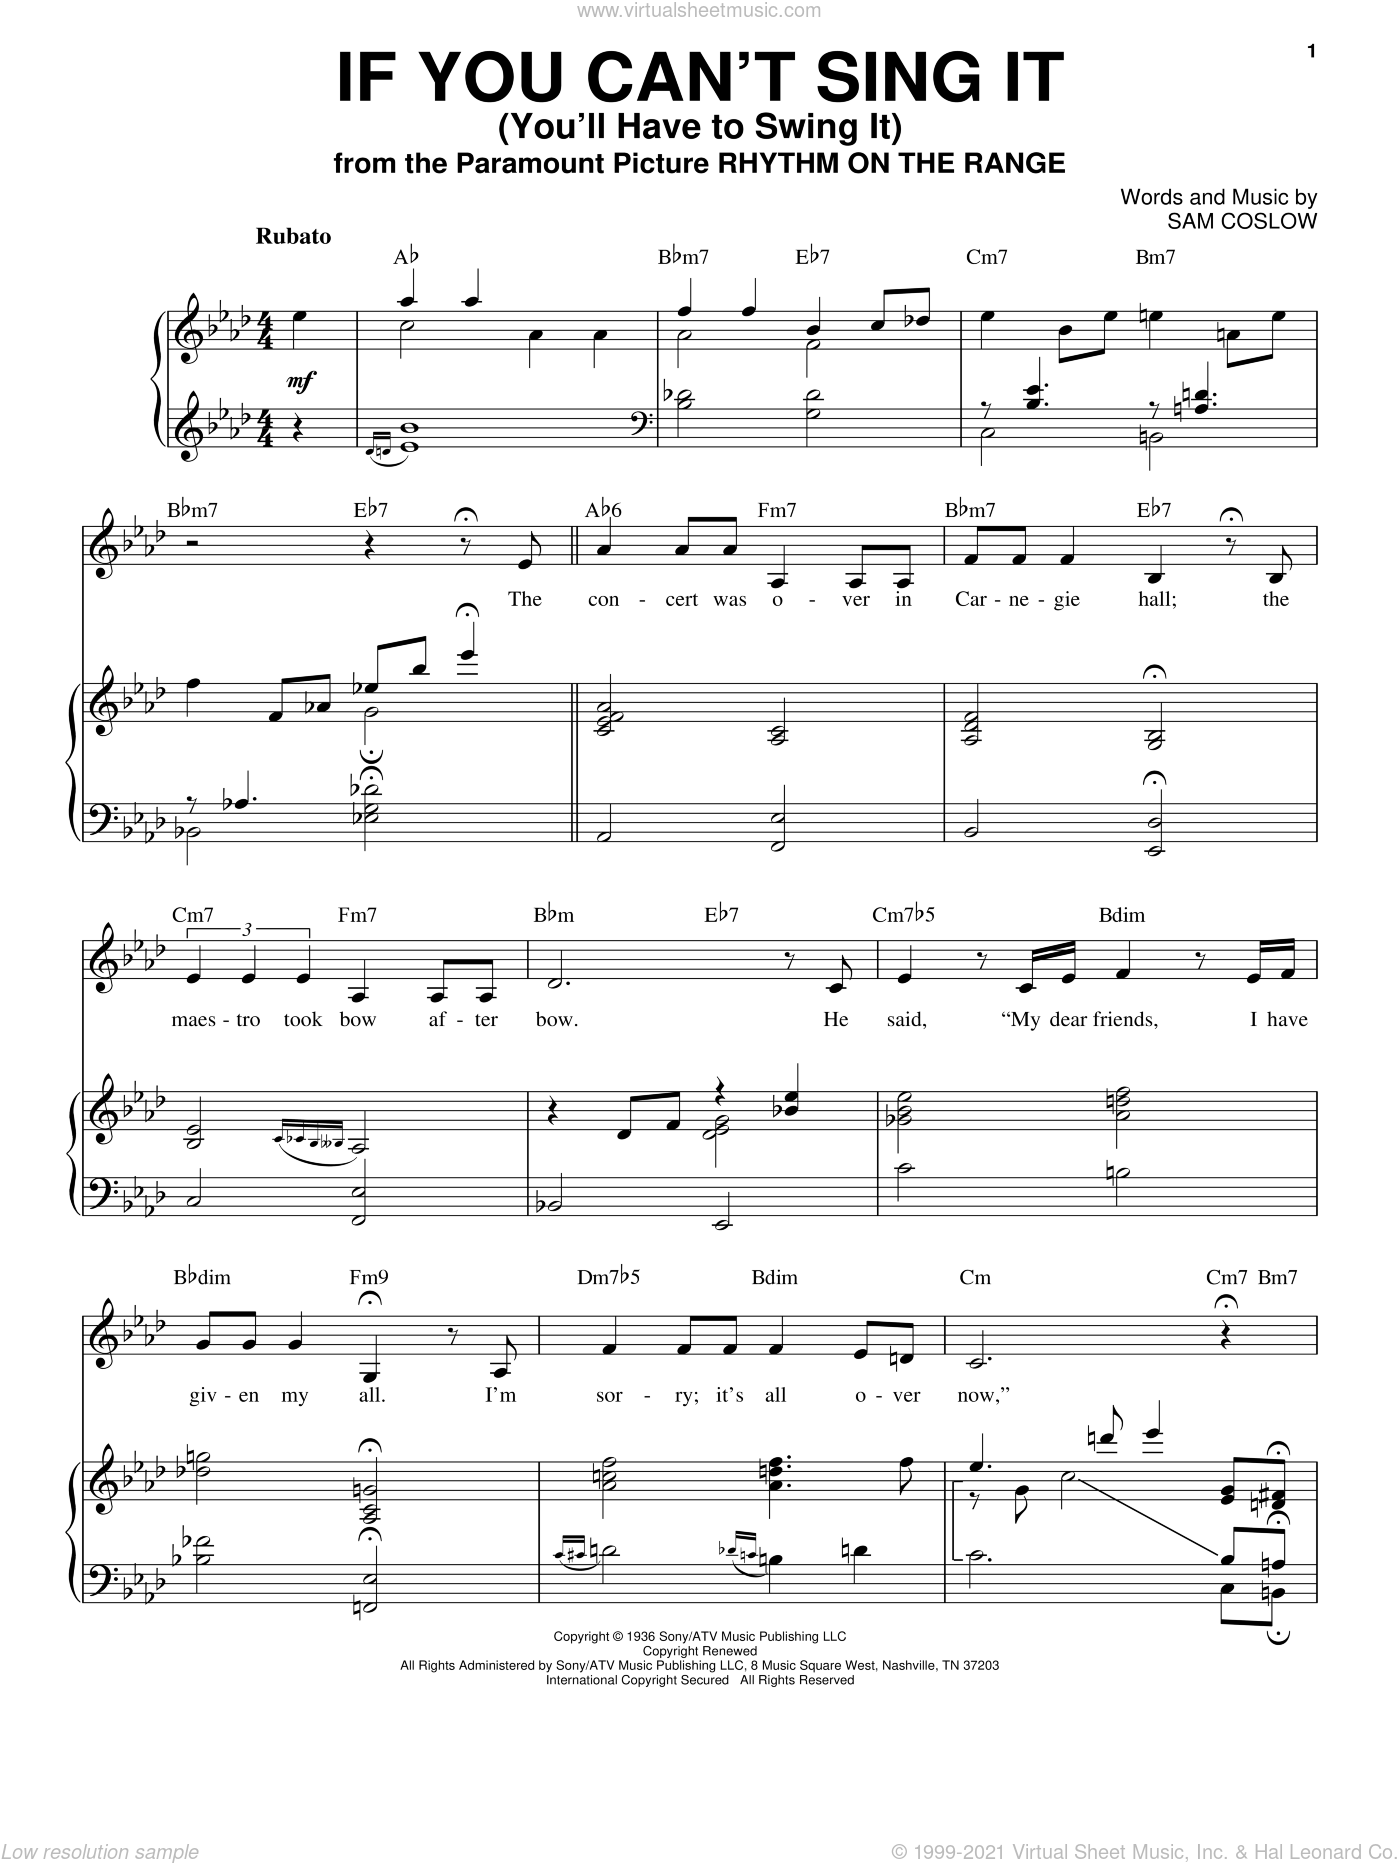 If You Can't Sing It (You'll Have To Swing It) sheet music for voice and piano by Sam Coslow